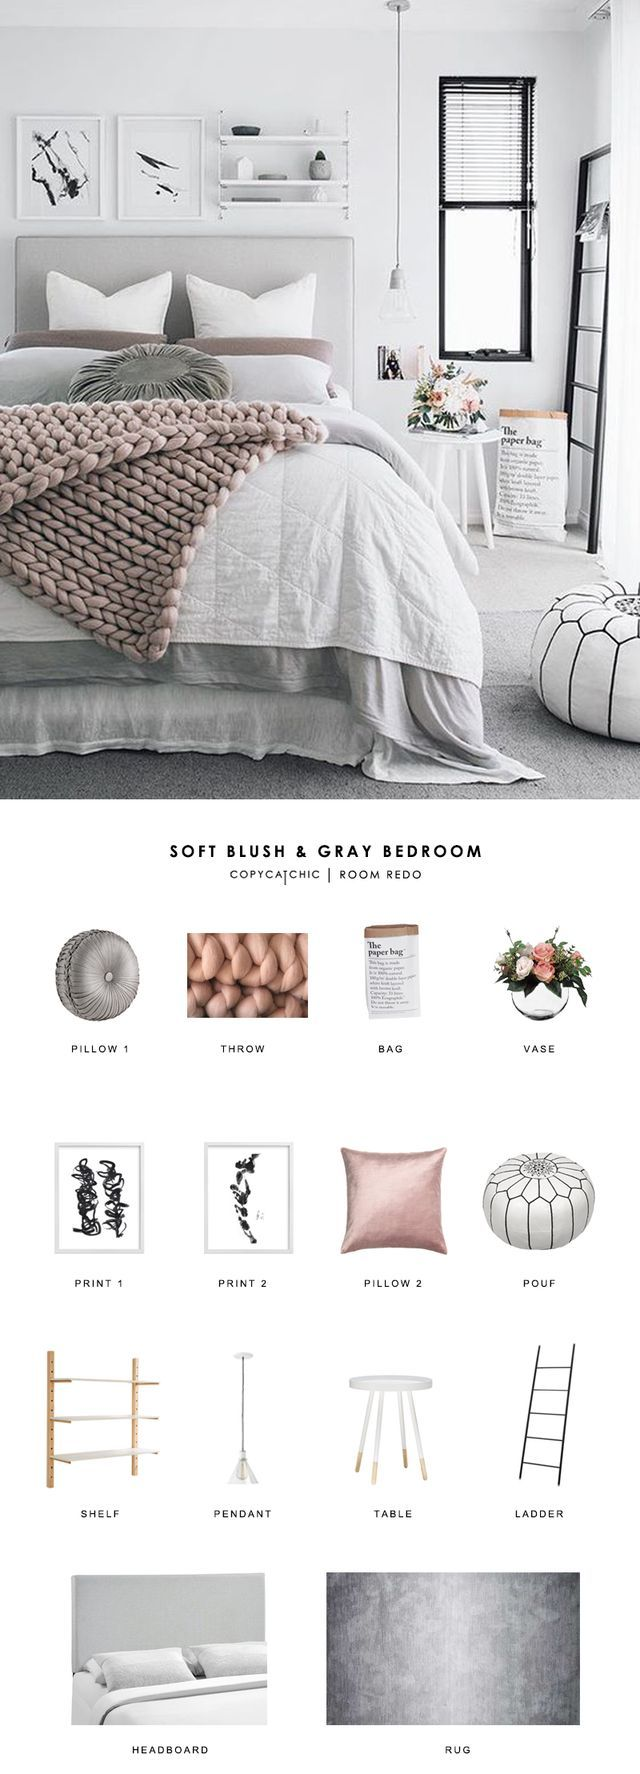 TOTAL | $1,383 PILLOW 1 $53 | THROW $156 | BAG $10 | VASE $24 | PRINT 1 $89 | PRINT 2 $89 | PILLOW 2 $10 | POUF $229 | SHELF $119 | PENDANT $167 | TABLE $60 | LADDER $30 | HEADBOARD $68 | RUG $269